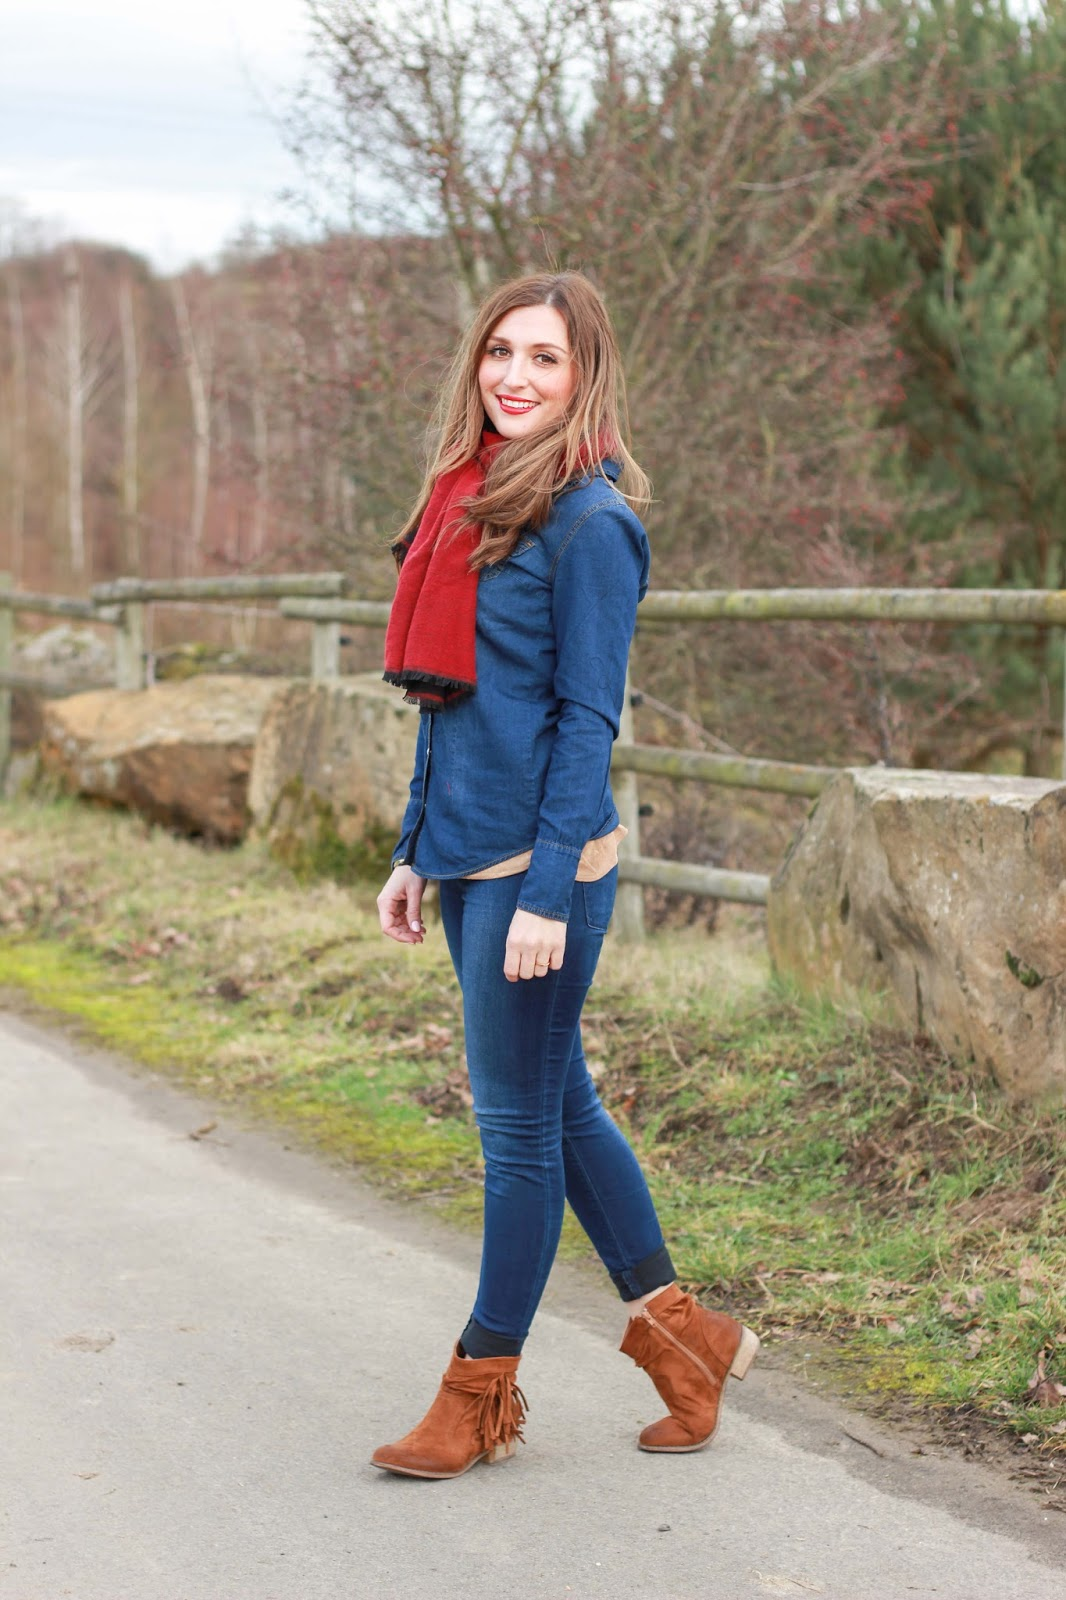 Fashionblogger im Jenas Outfit - Jenas Outfit - Fashionblogger - Fashionblog - Deutsche Fashionblogger - Fashionblogger aus Deutschland - Amerikan Style - Country Style